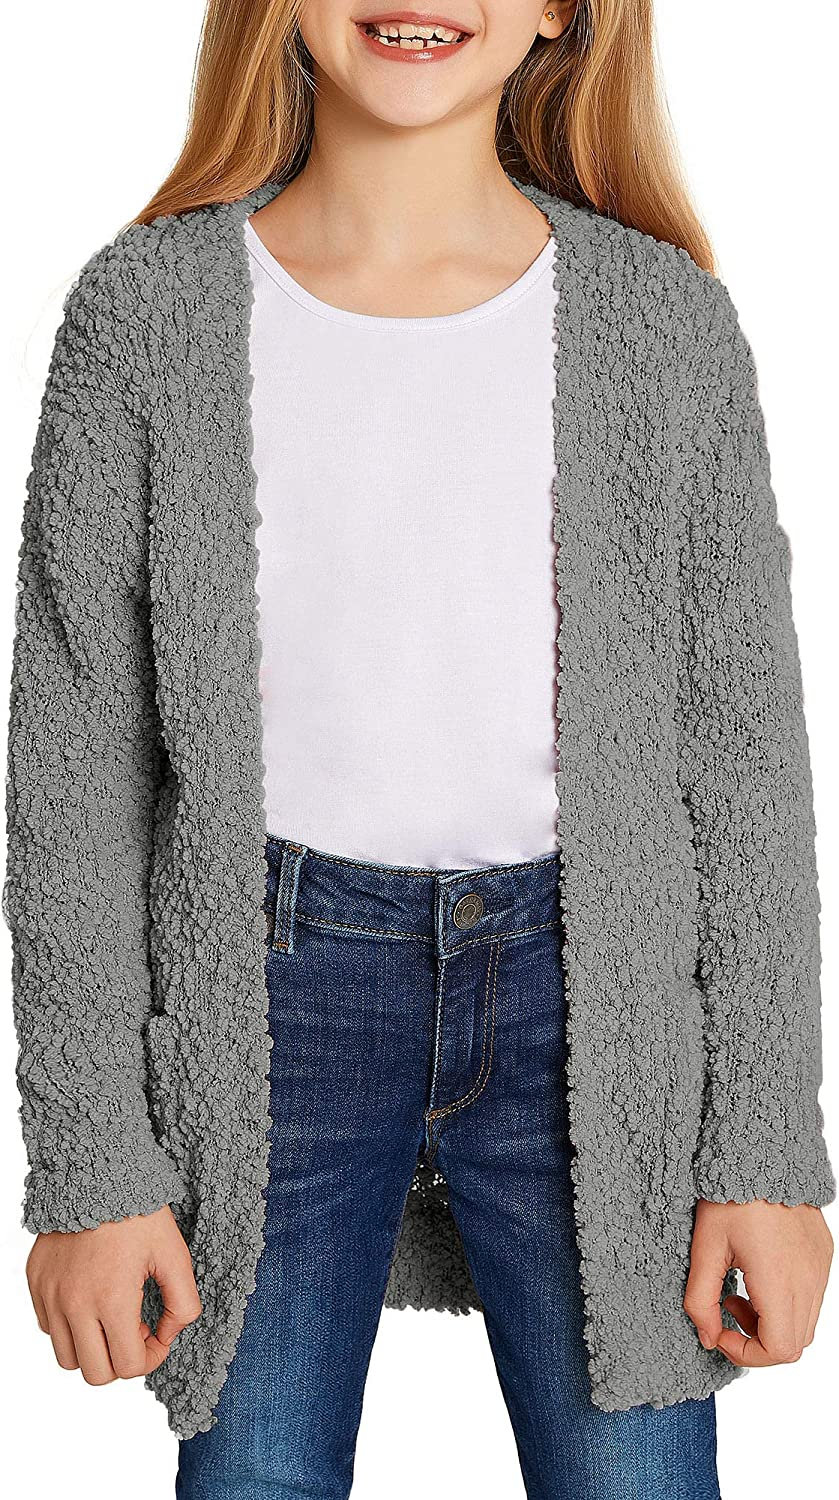 LookbookStore Girls Open Front Genuine Free Shipping Knit Sweater Pocketed Cardigan Ou Luxury goods